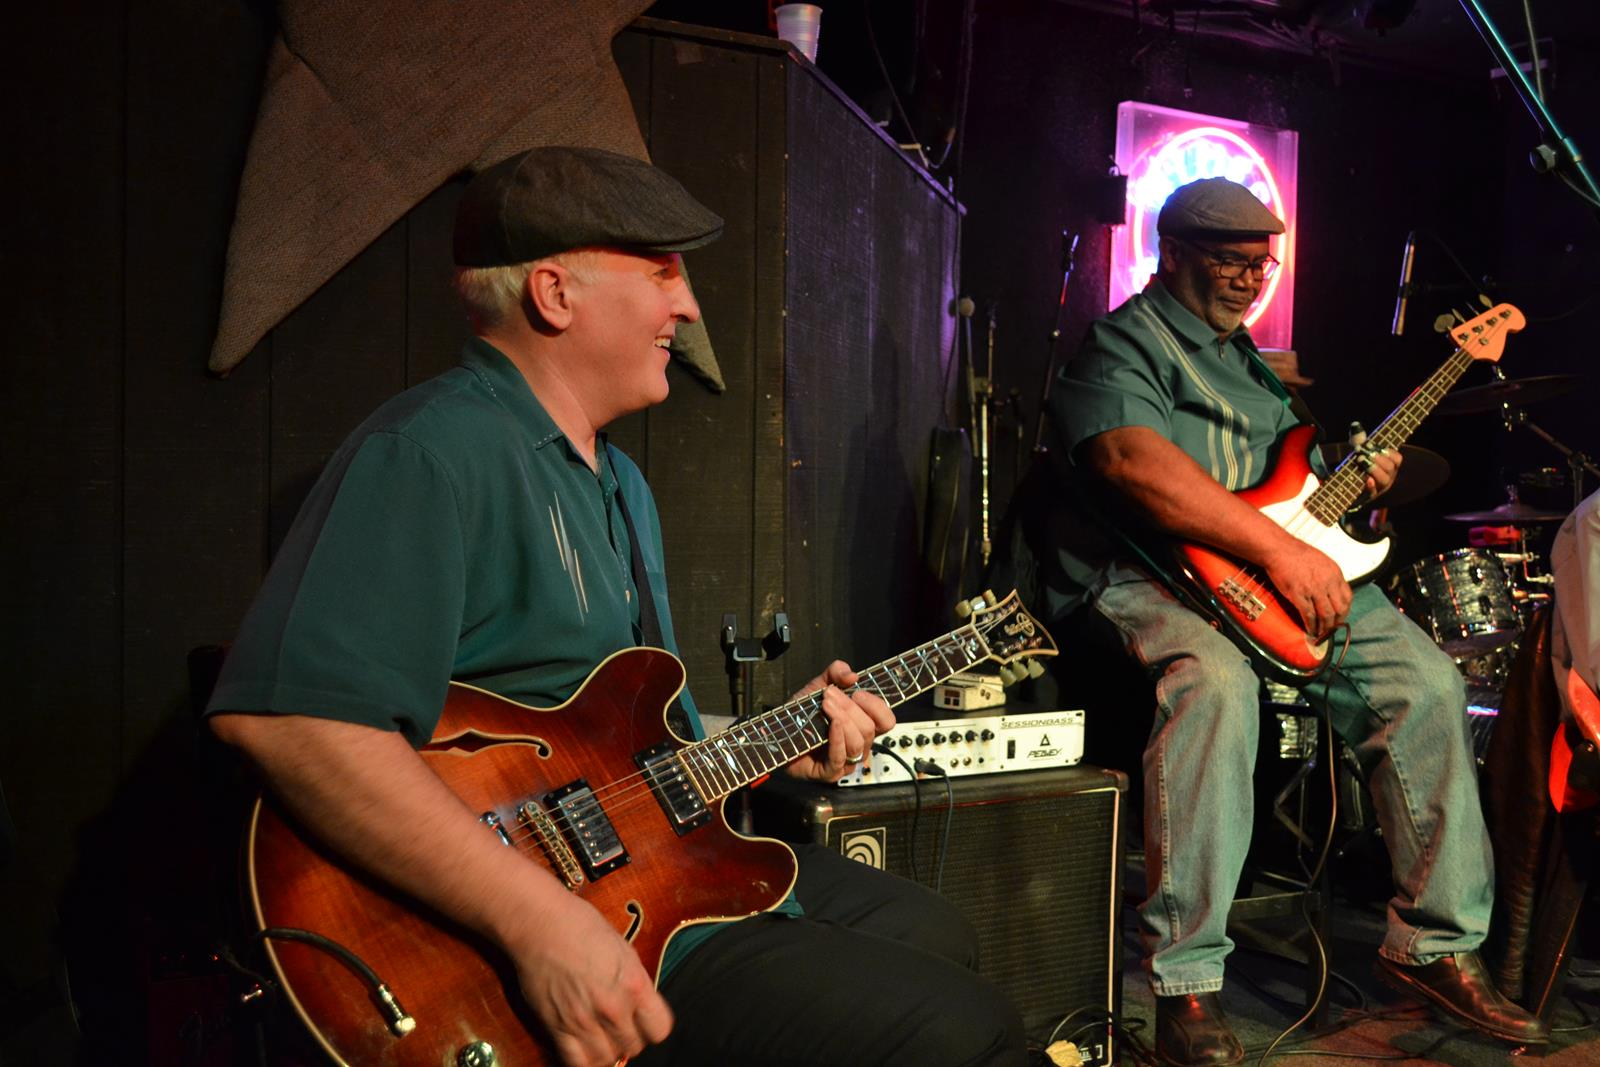 Musicians perform at the Blues City Cafe on Beale Street in Memphis.